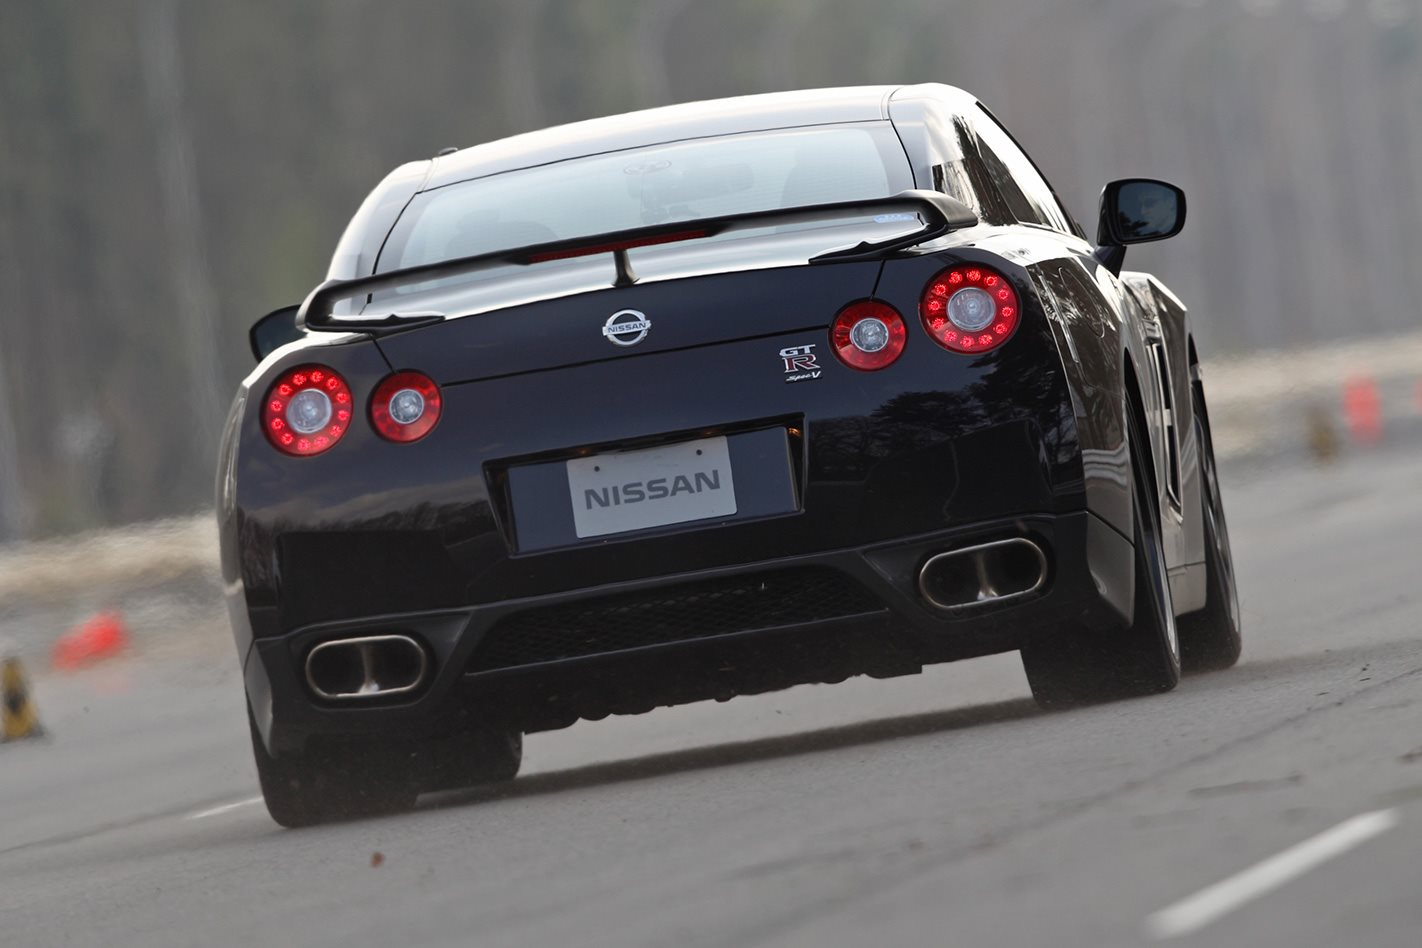 Nissan R35 GT-R Spec-V rear